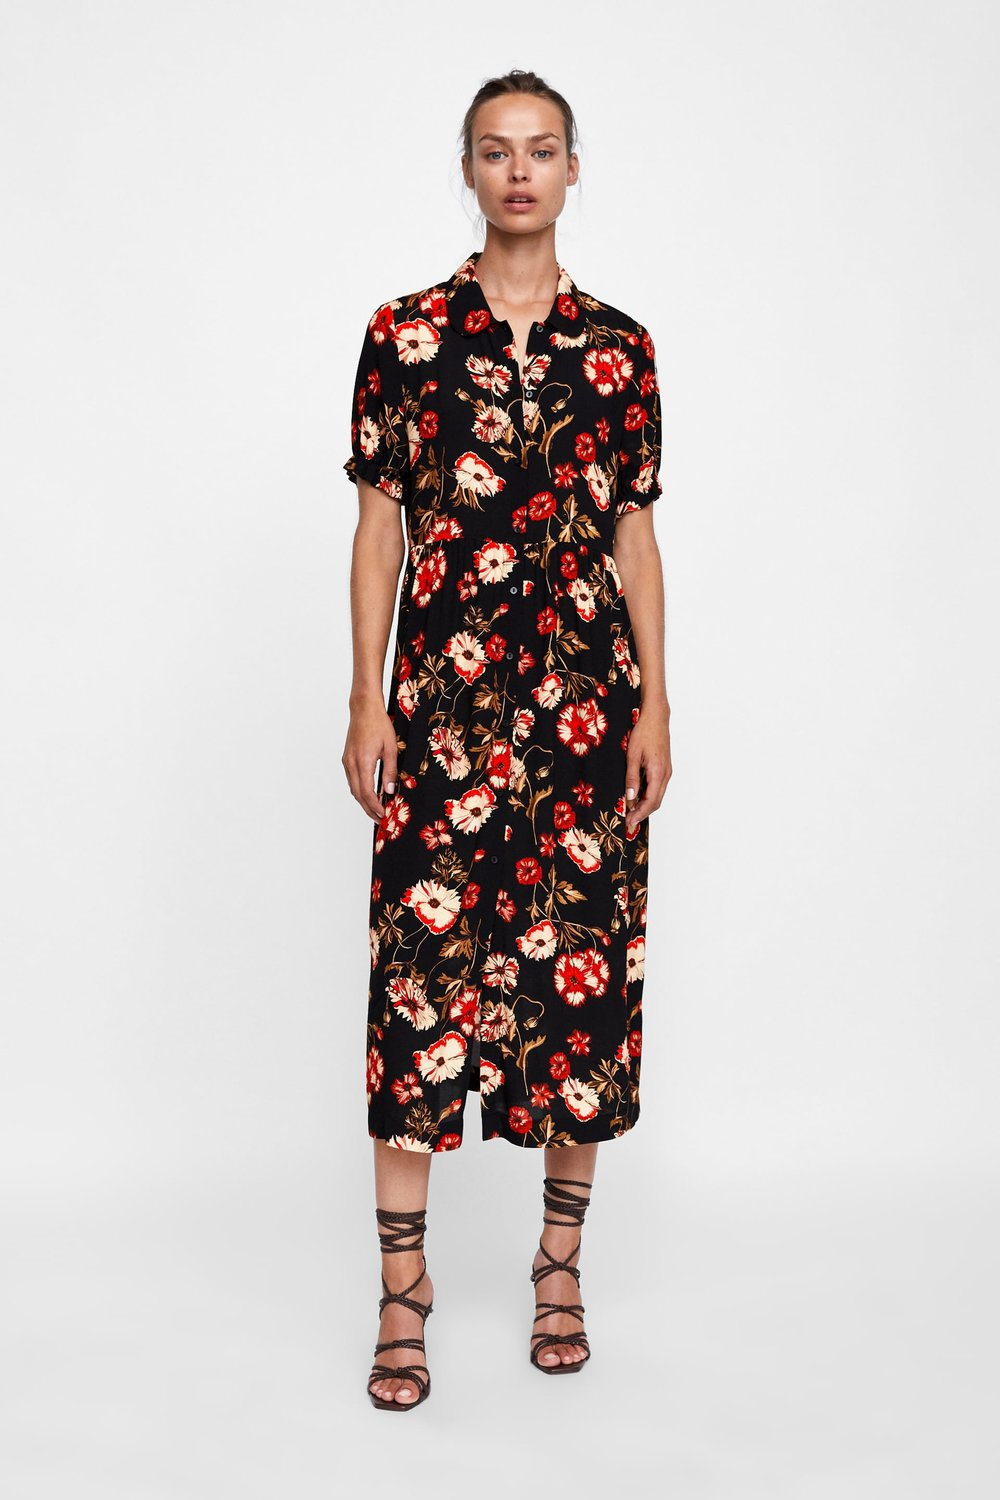 https://www.zara.com/ca/en/floral-print-dress-p08514242.html?v1=6778074&v2=1074540